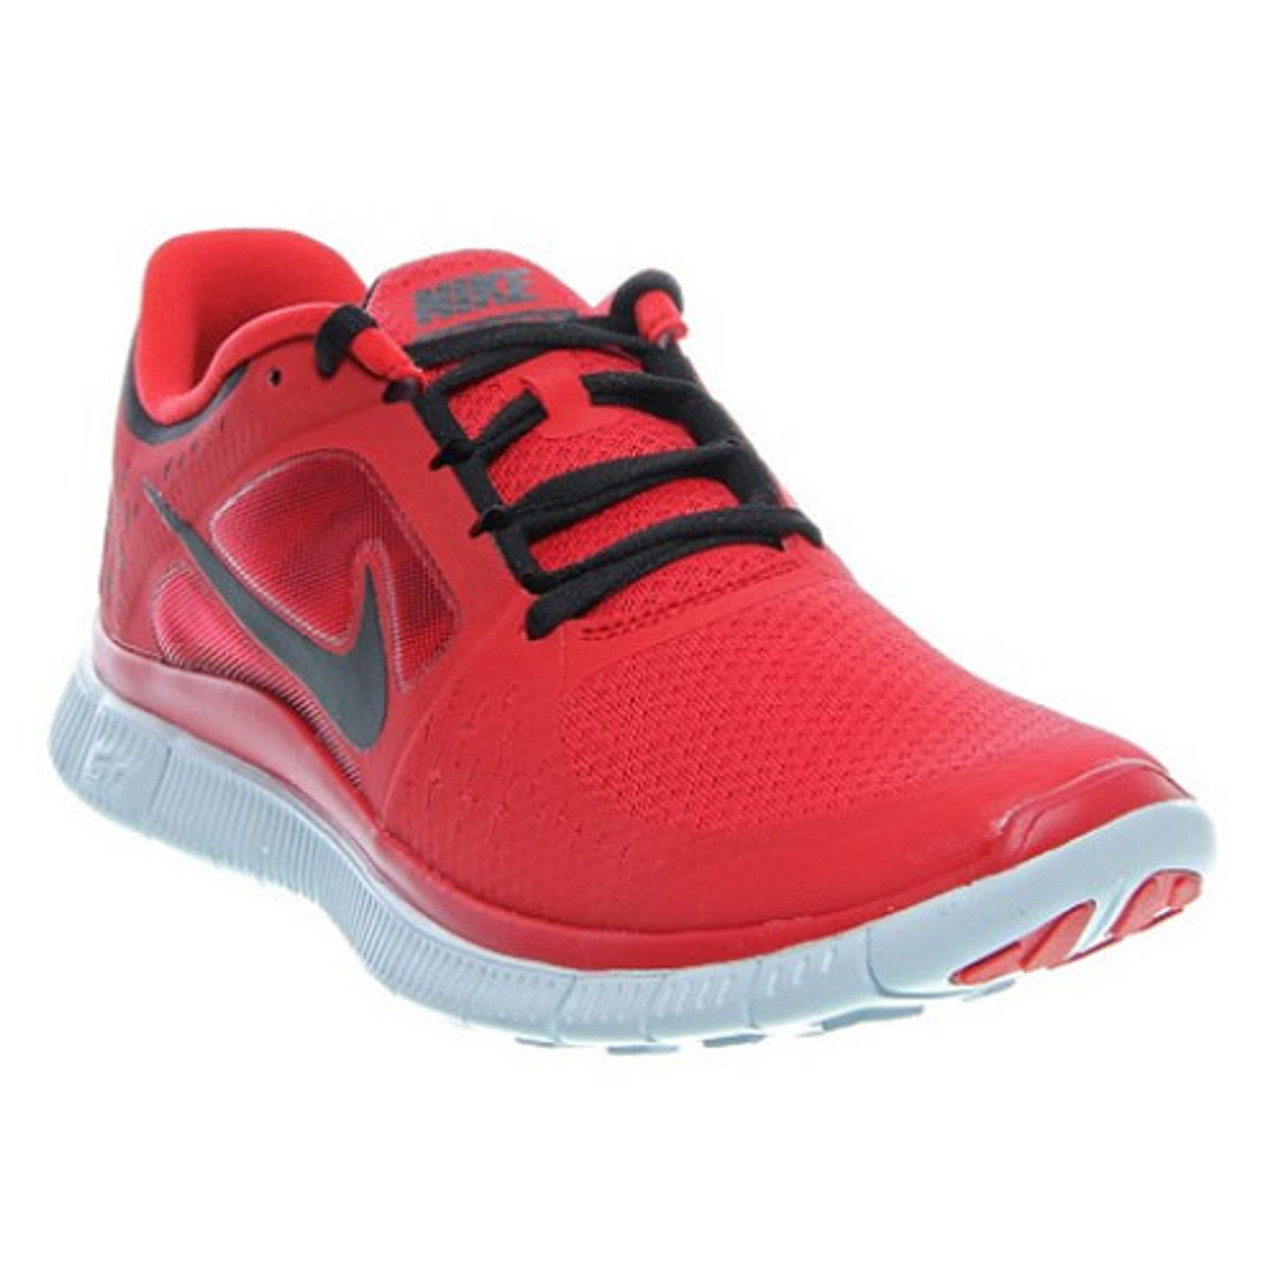 cheap for discount 802dc 17ae2 Nike Free Run + 3 Red/Blk